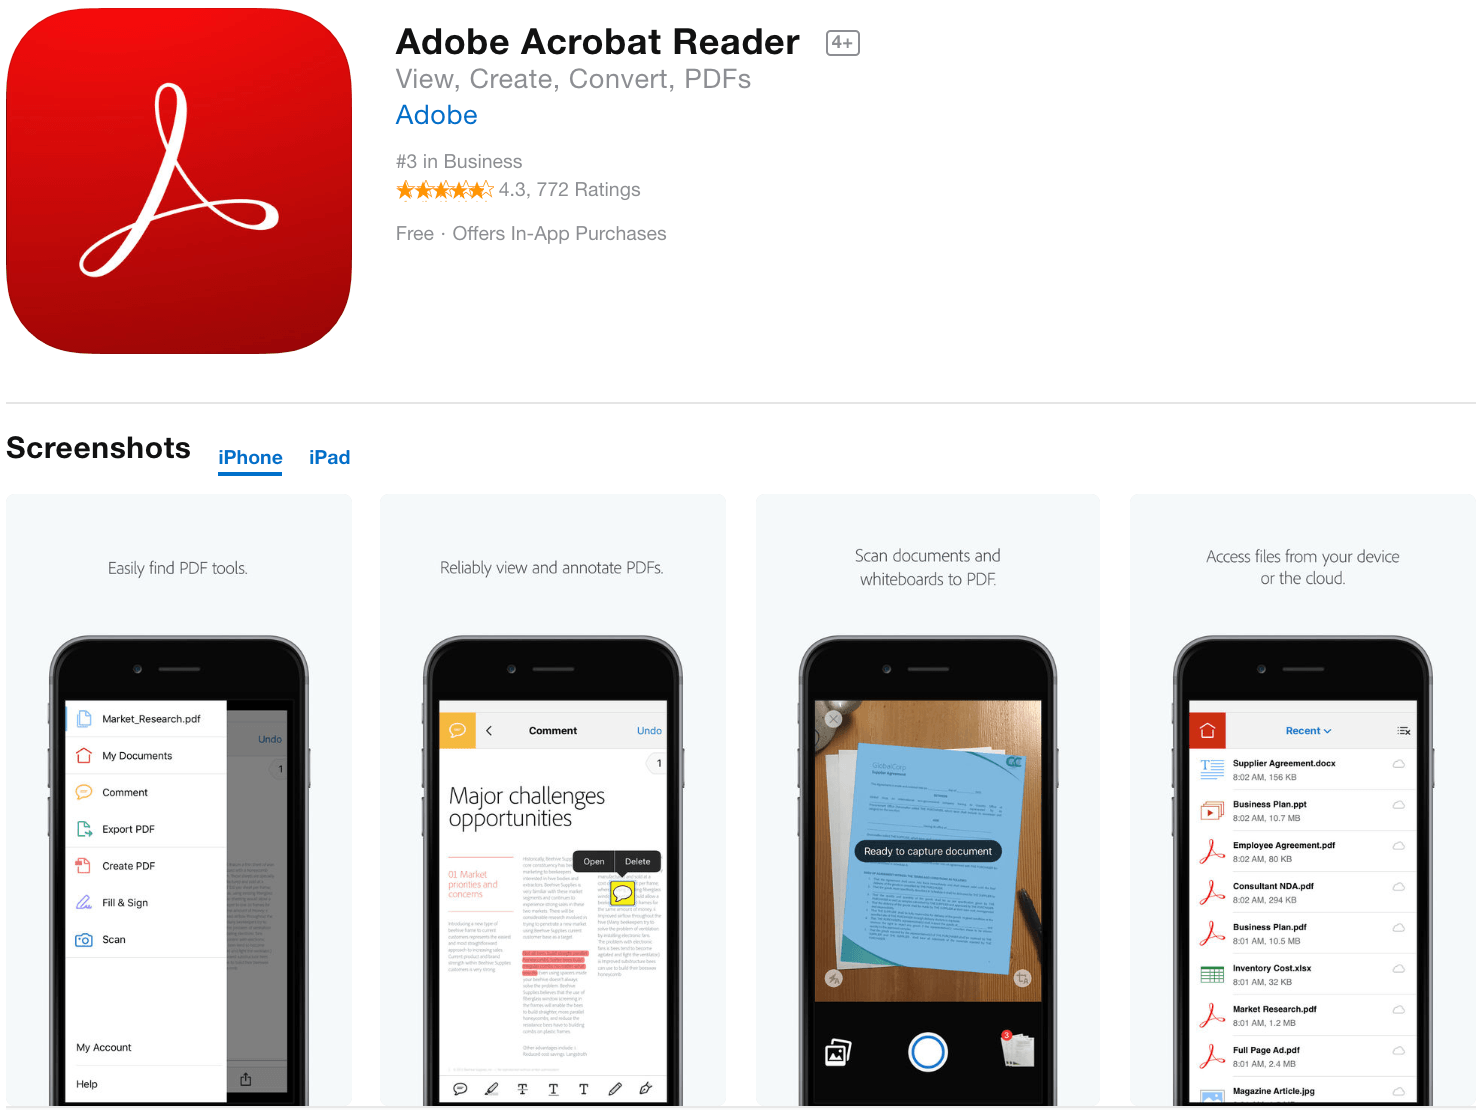 Marketing Apps Adobe Acrobat Reader